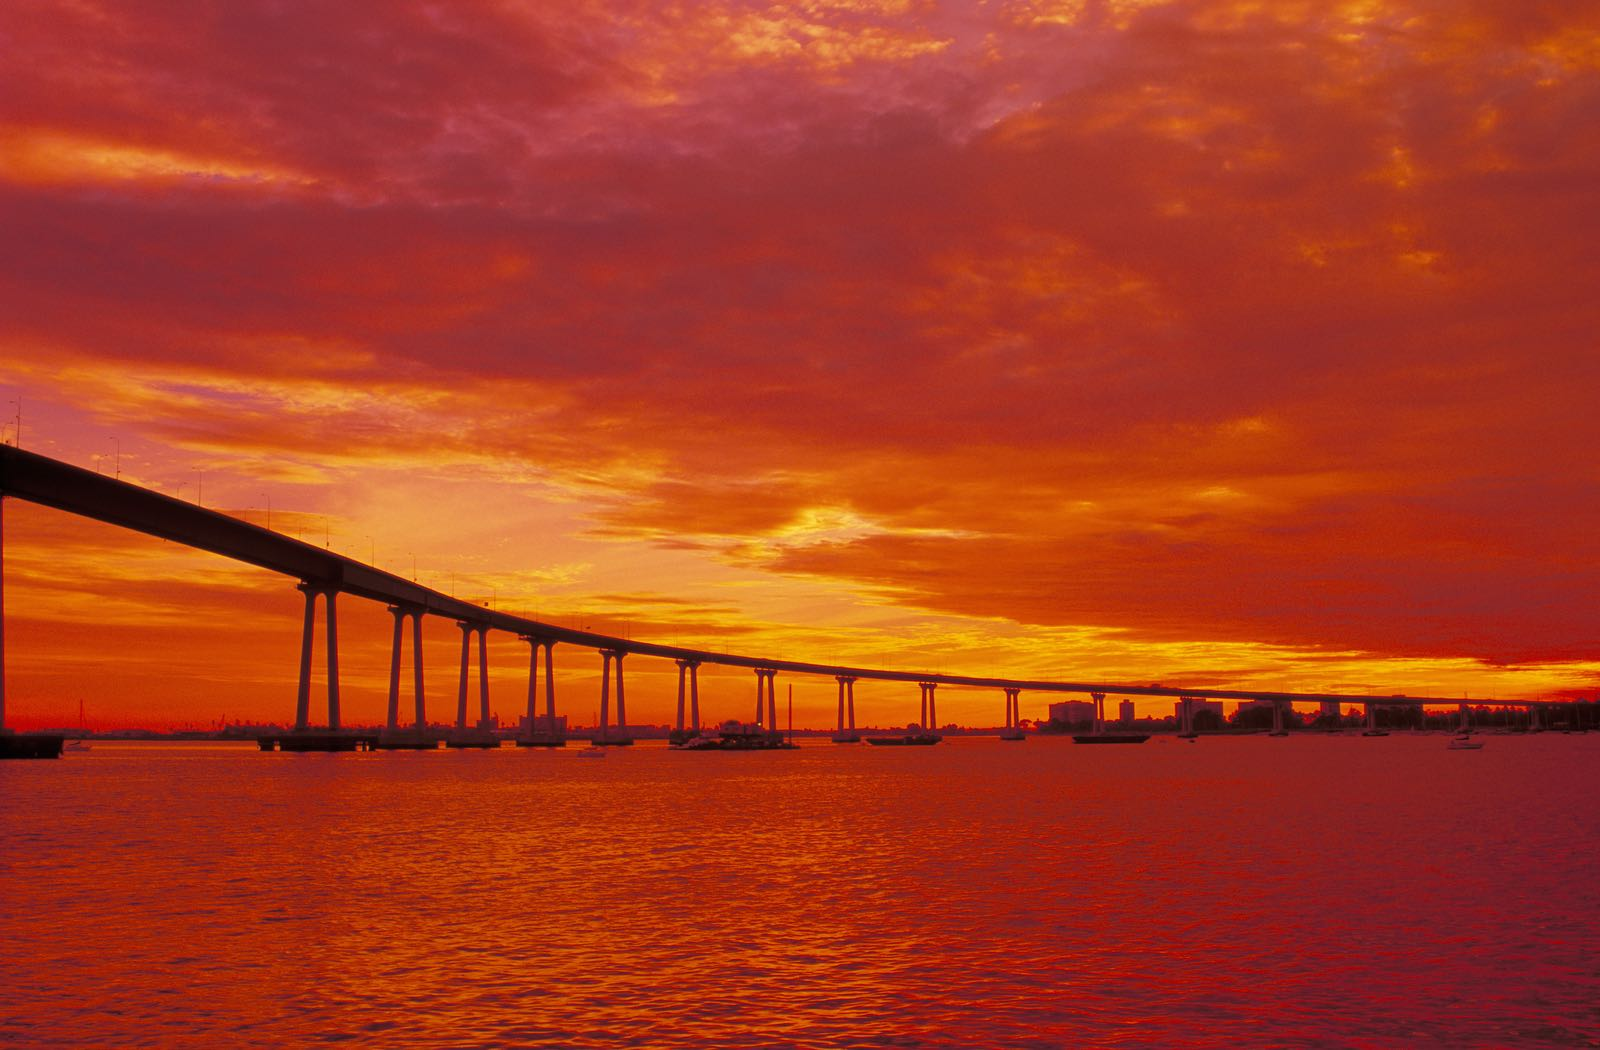 Red Sunset over the Coronado Bridge and San Diego Bay - Top Things to Do